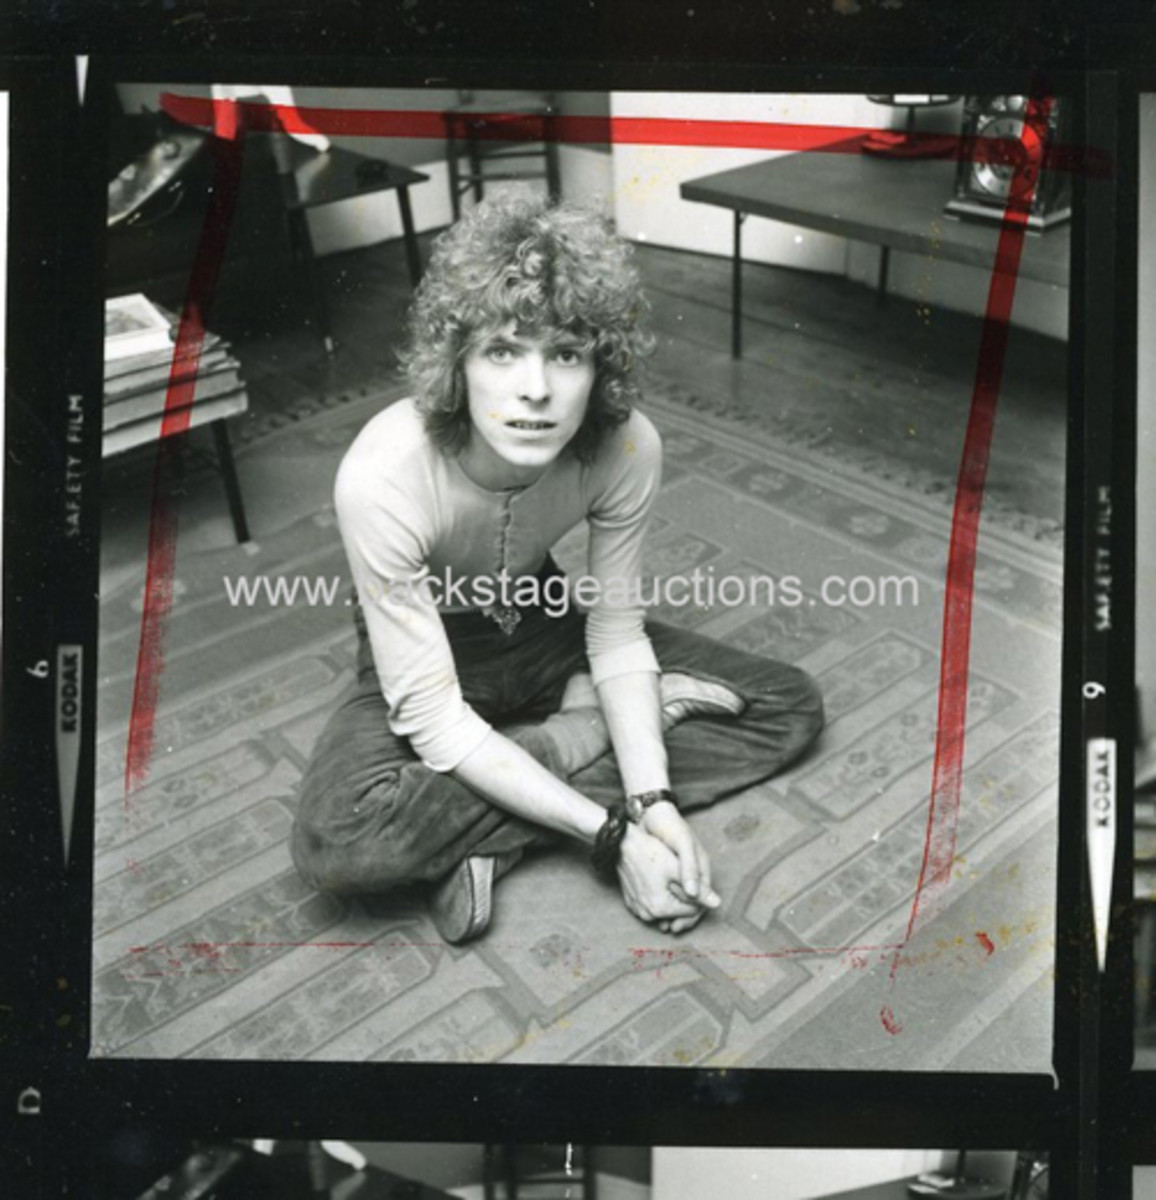 David Bowie image courtesy of Backstage Auctions.